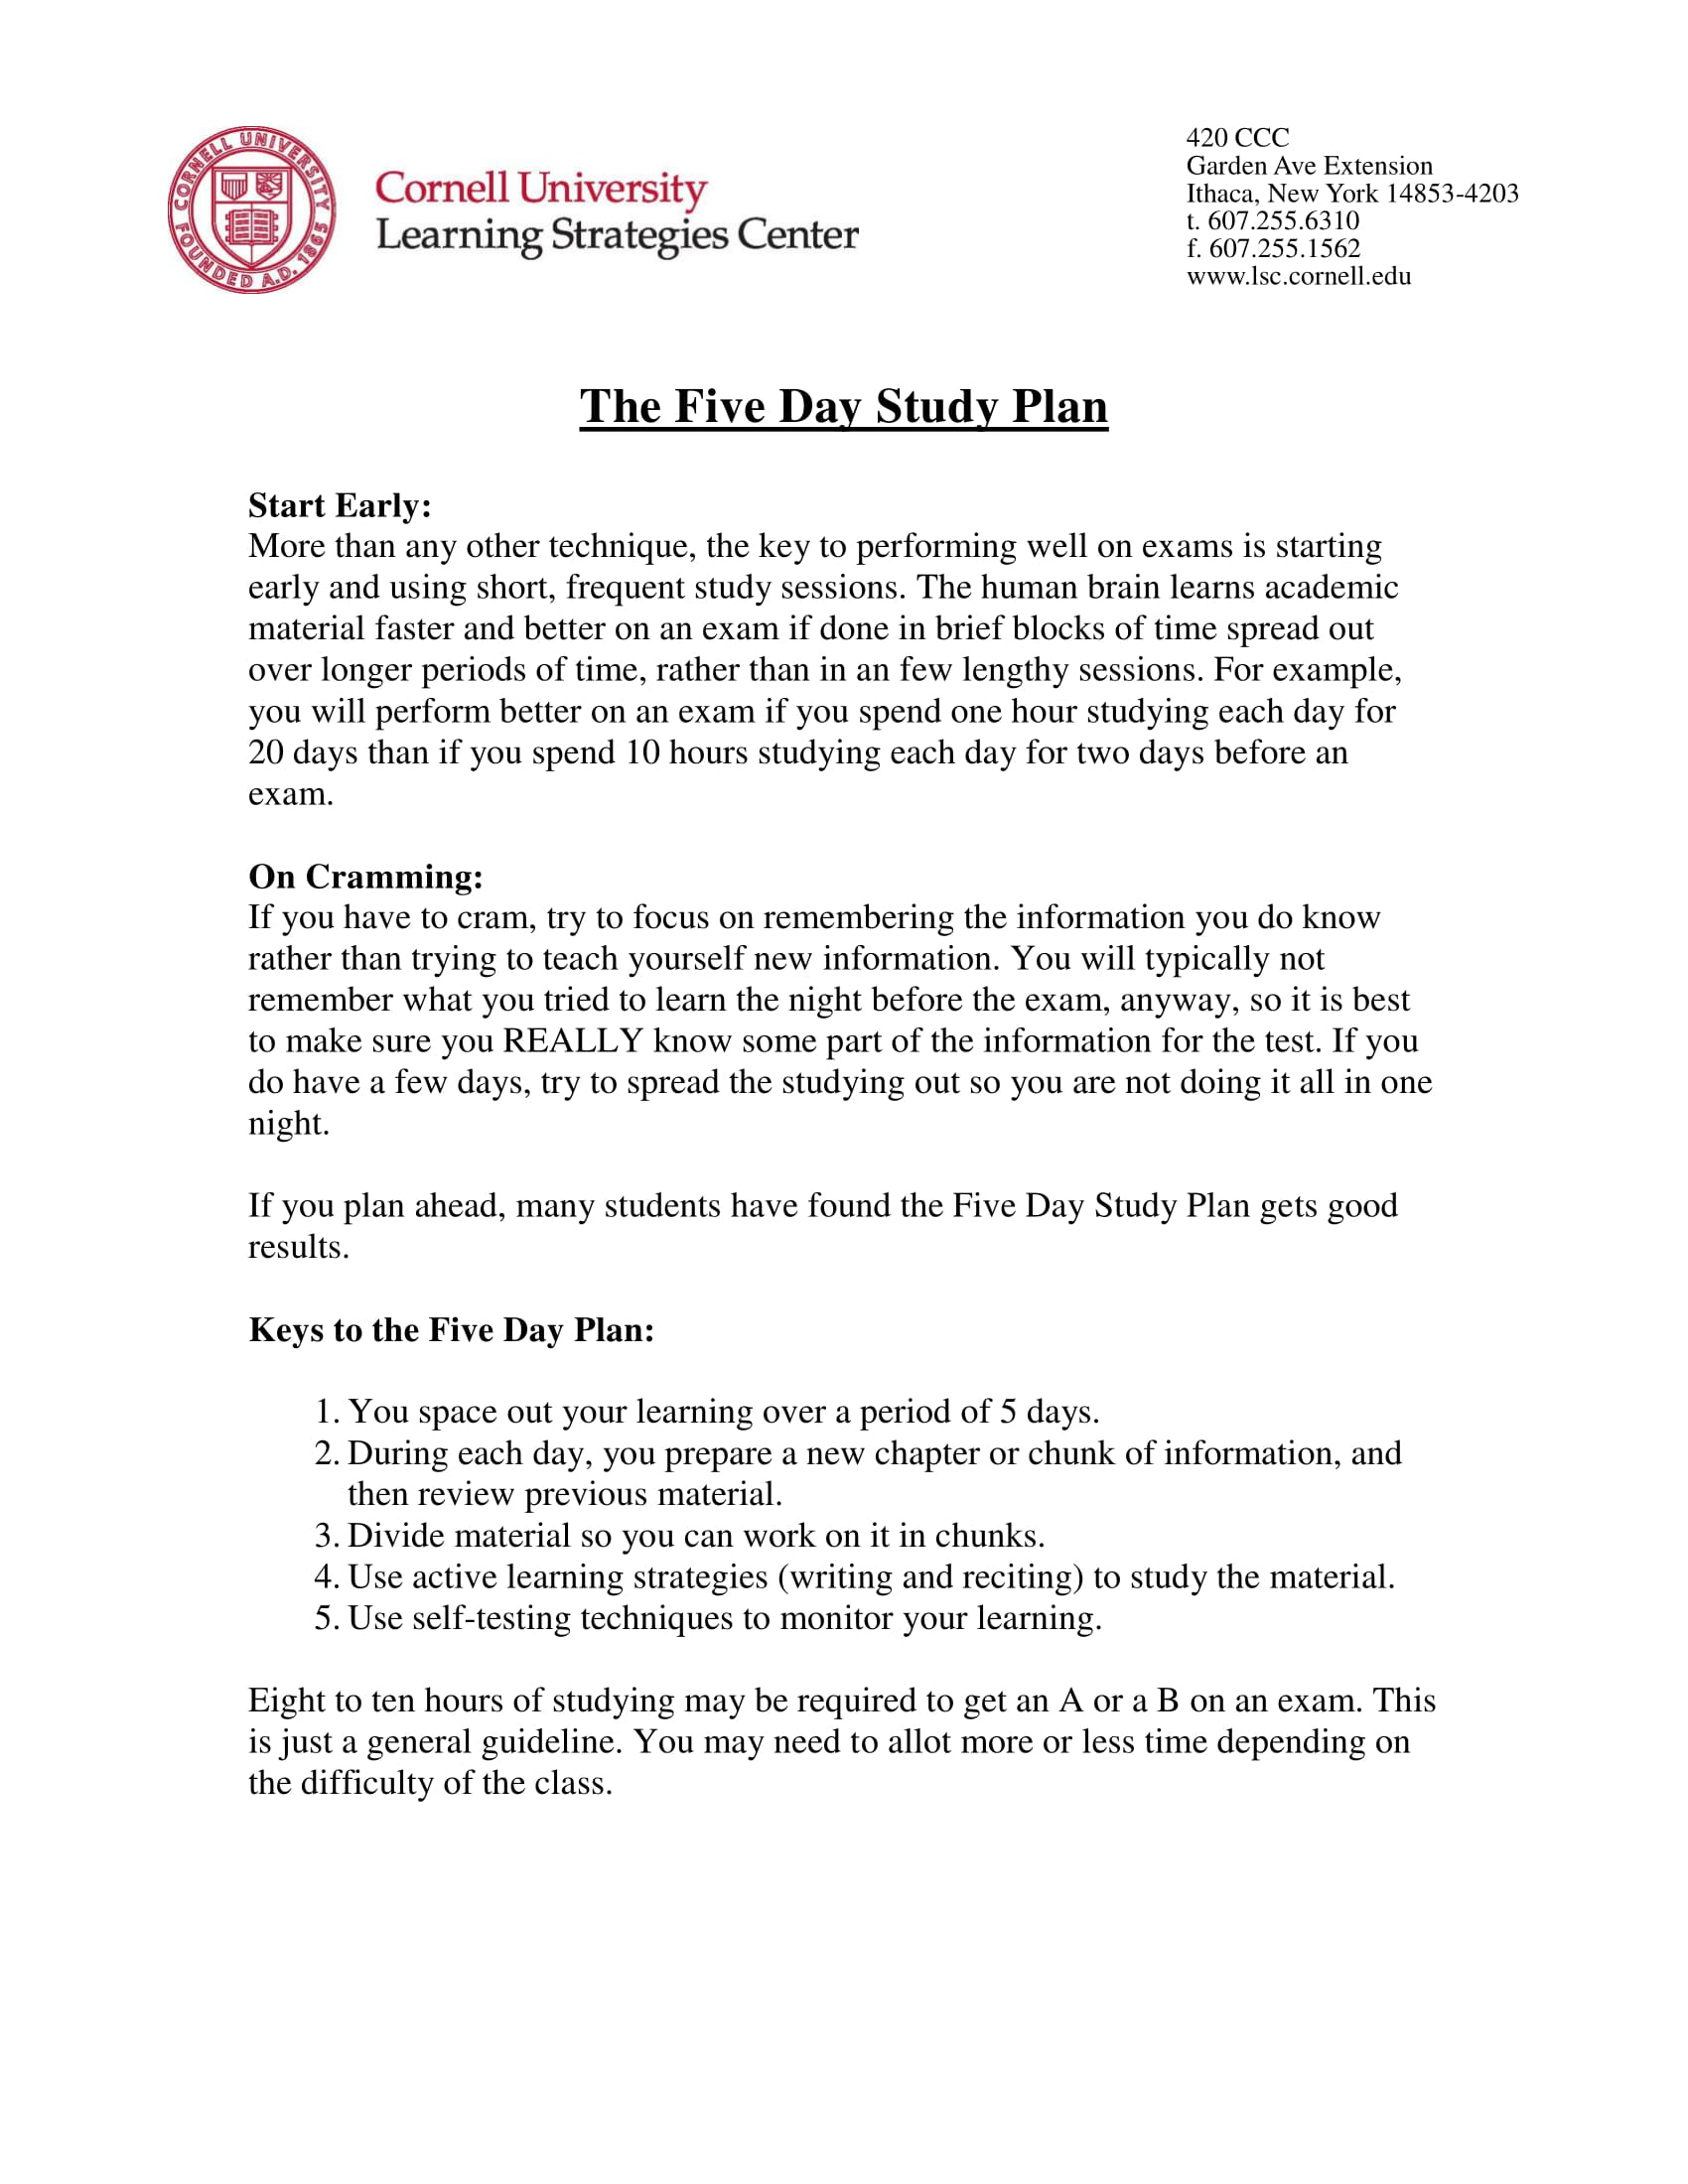 five day study plan example